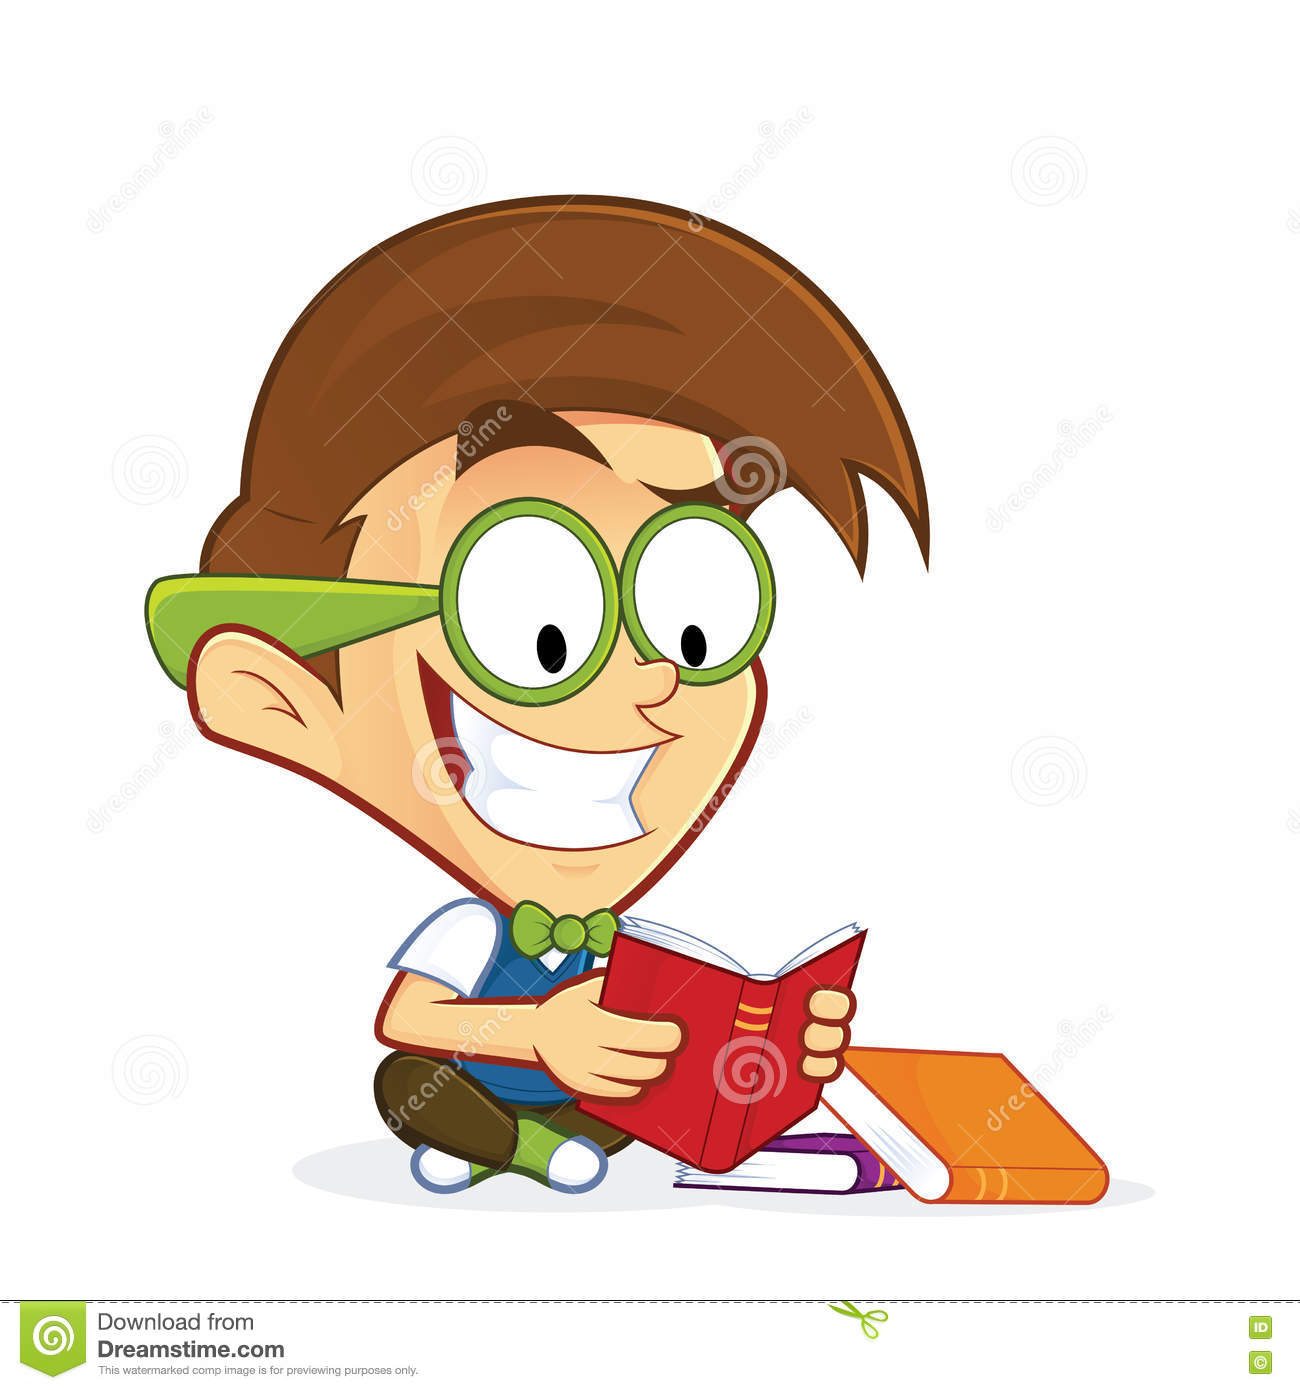 Cartoon Characters Reader : Nerd geek reading book stock vector image of drawn cool